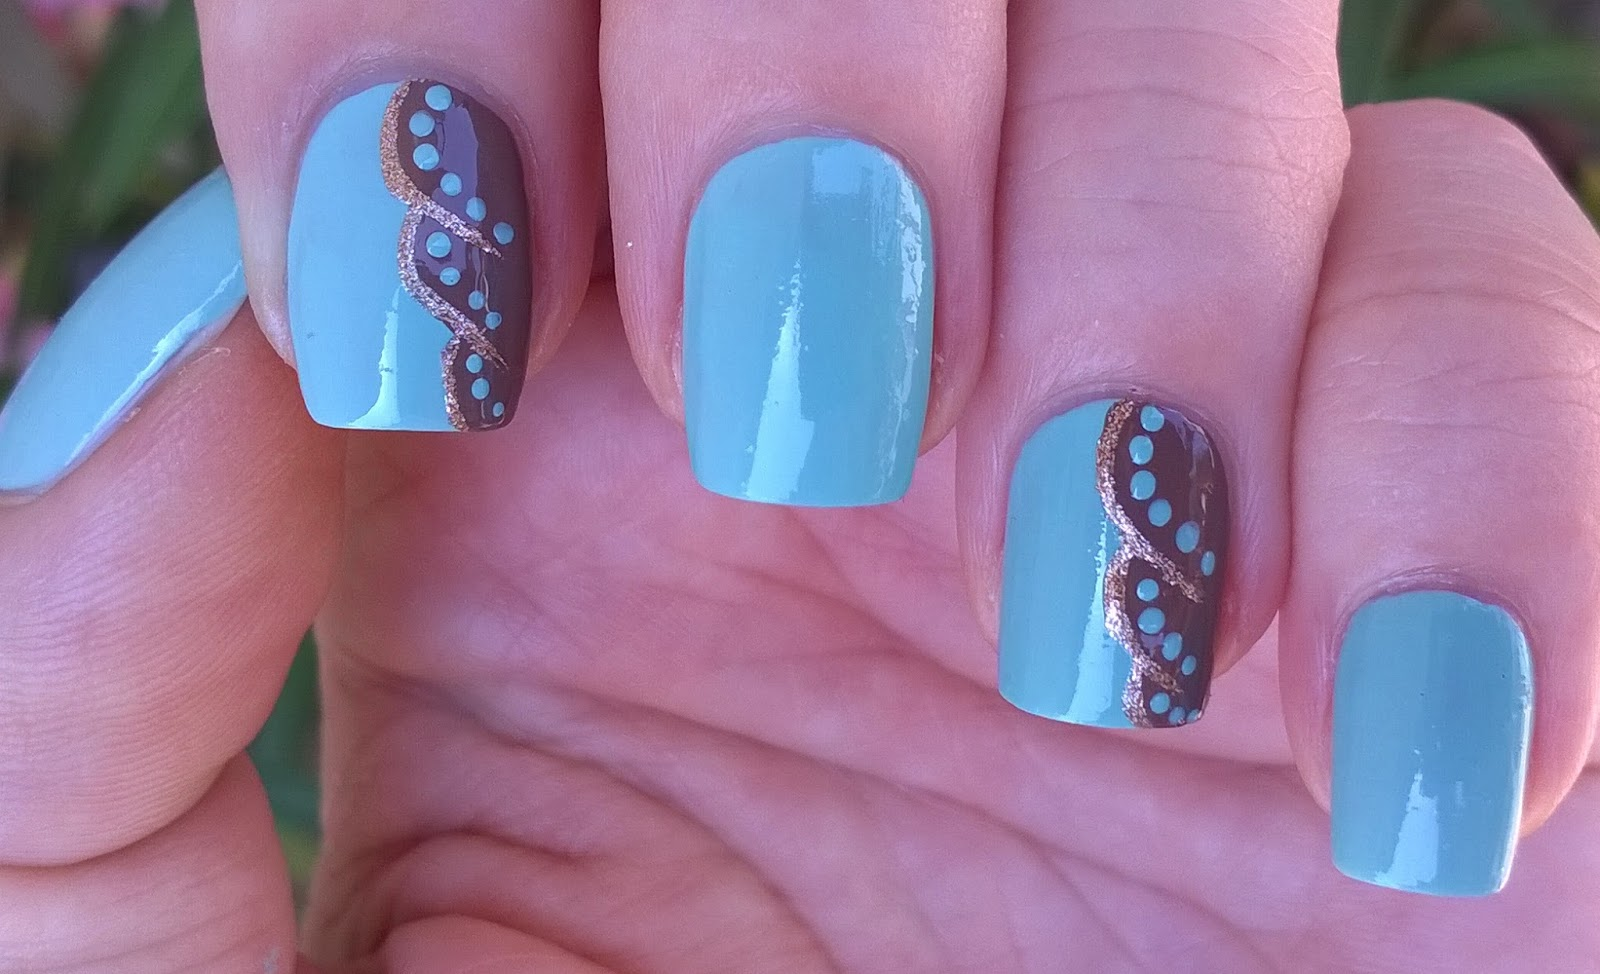 Life world women elegant blue brown gold nail art easy cute elegant blue brown gold nail art easy cute nail designs prinsesfo Image collections